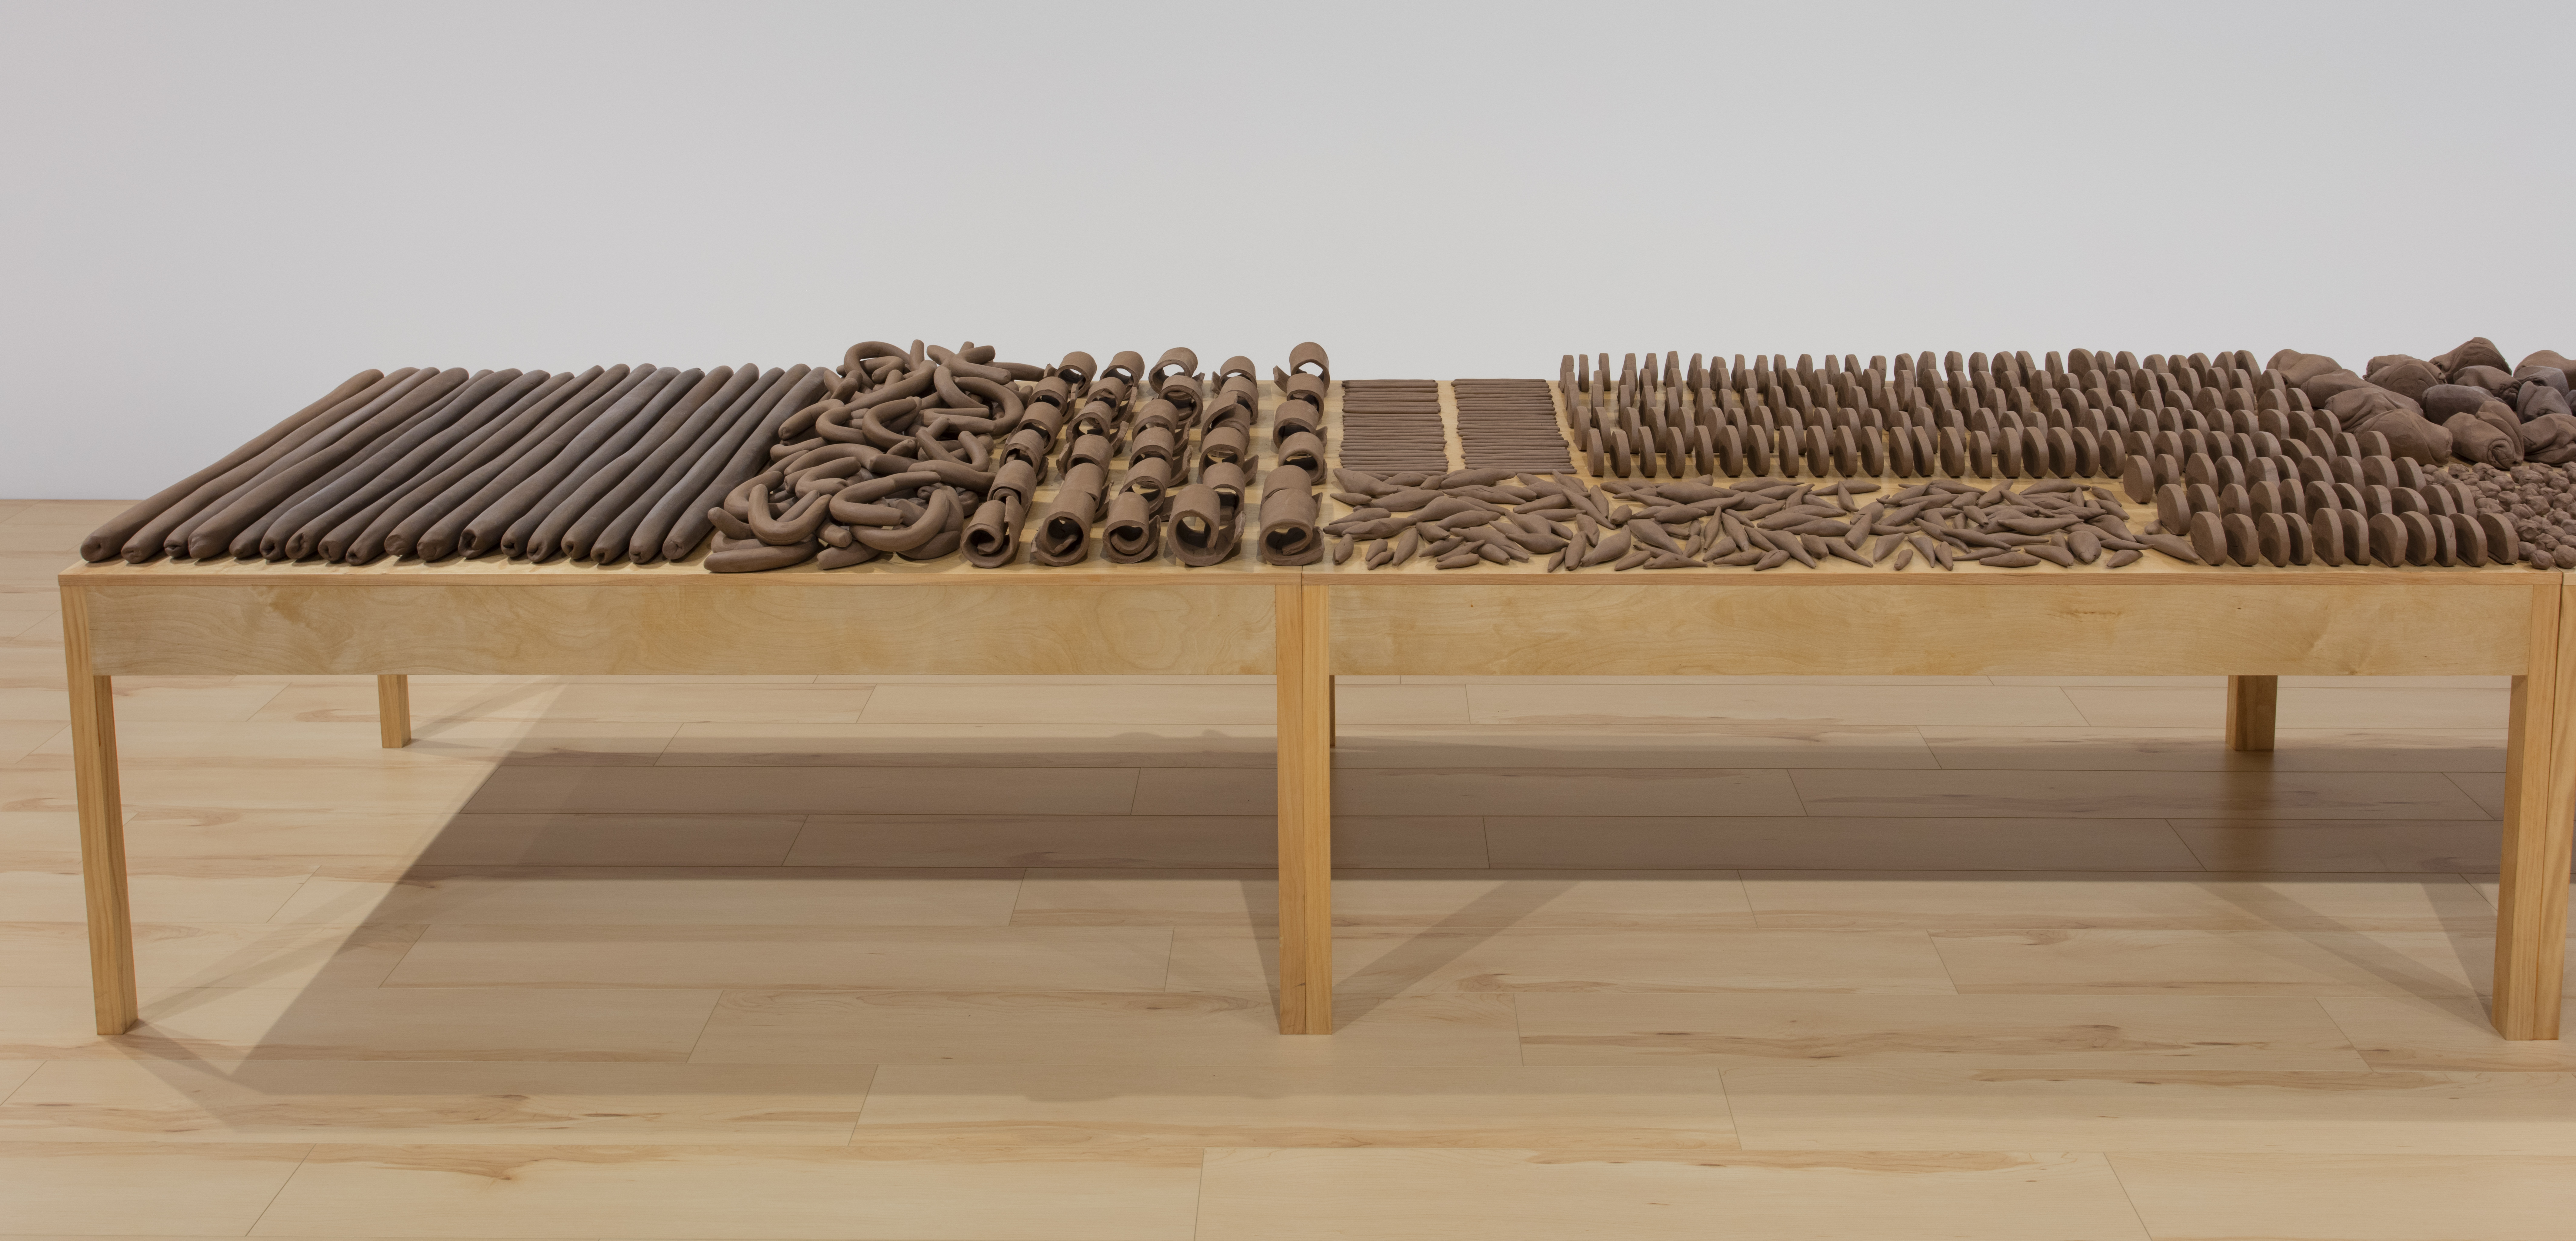 Anna Maria Maiolino, Estão na Mesa (They Are on the Table), from the Terras Modeladas (Modeled Earth) series, 2017, clay and wood table, courtesy of the artist.